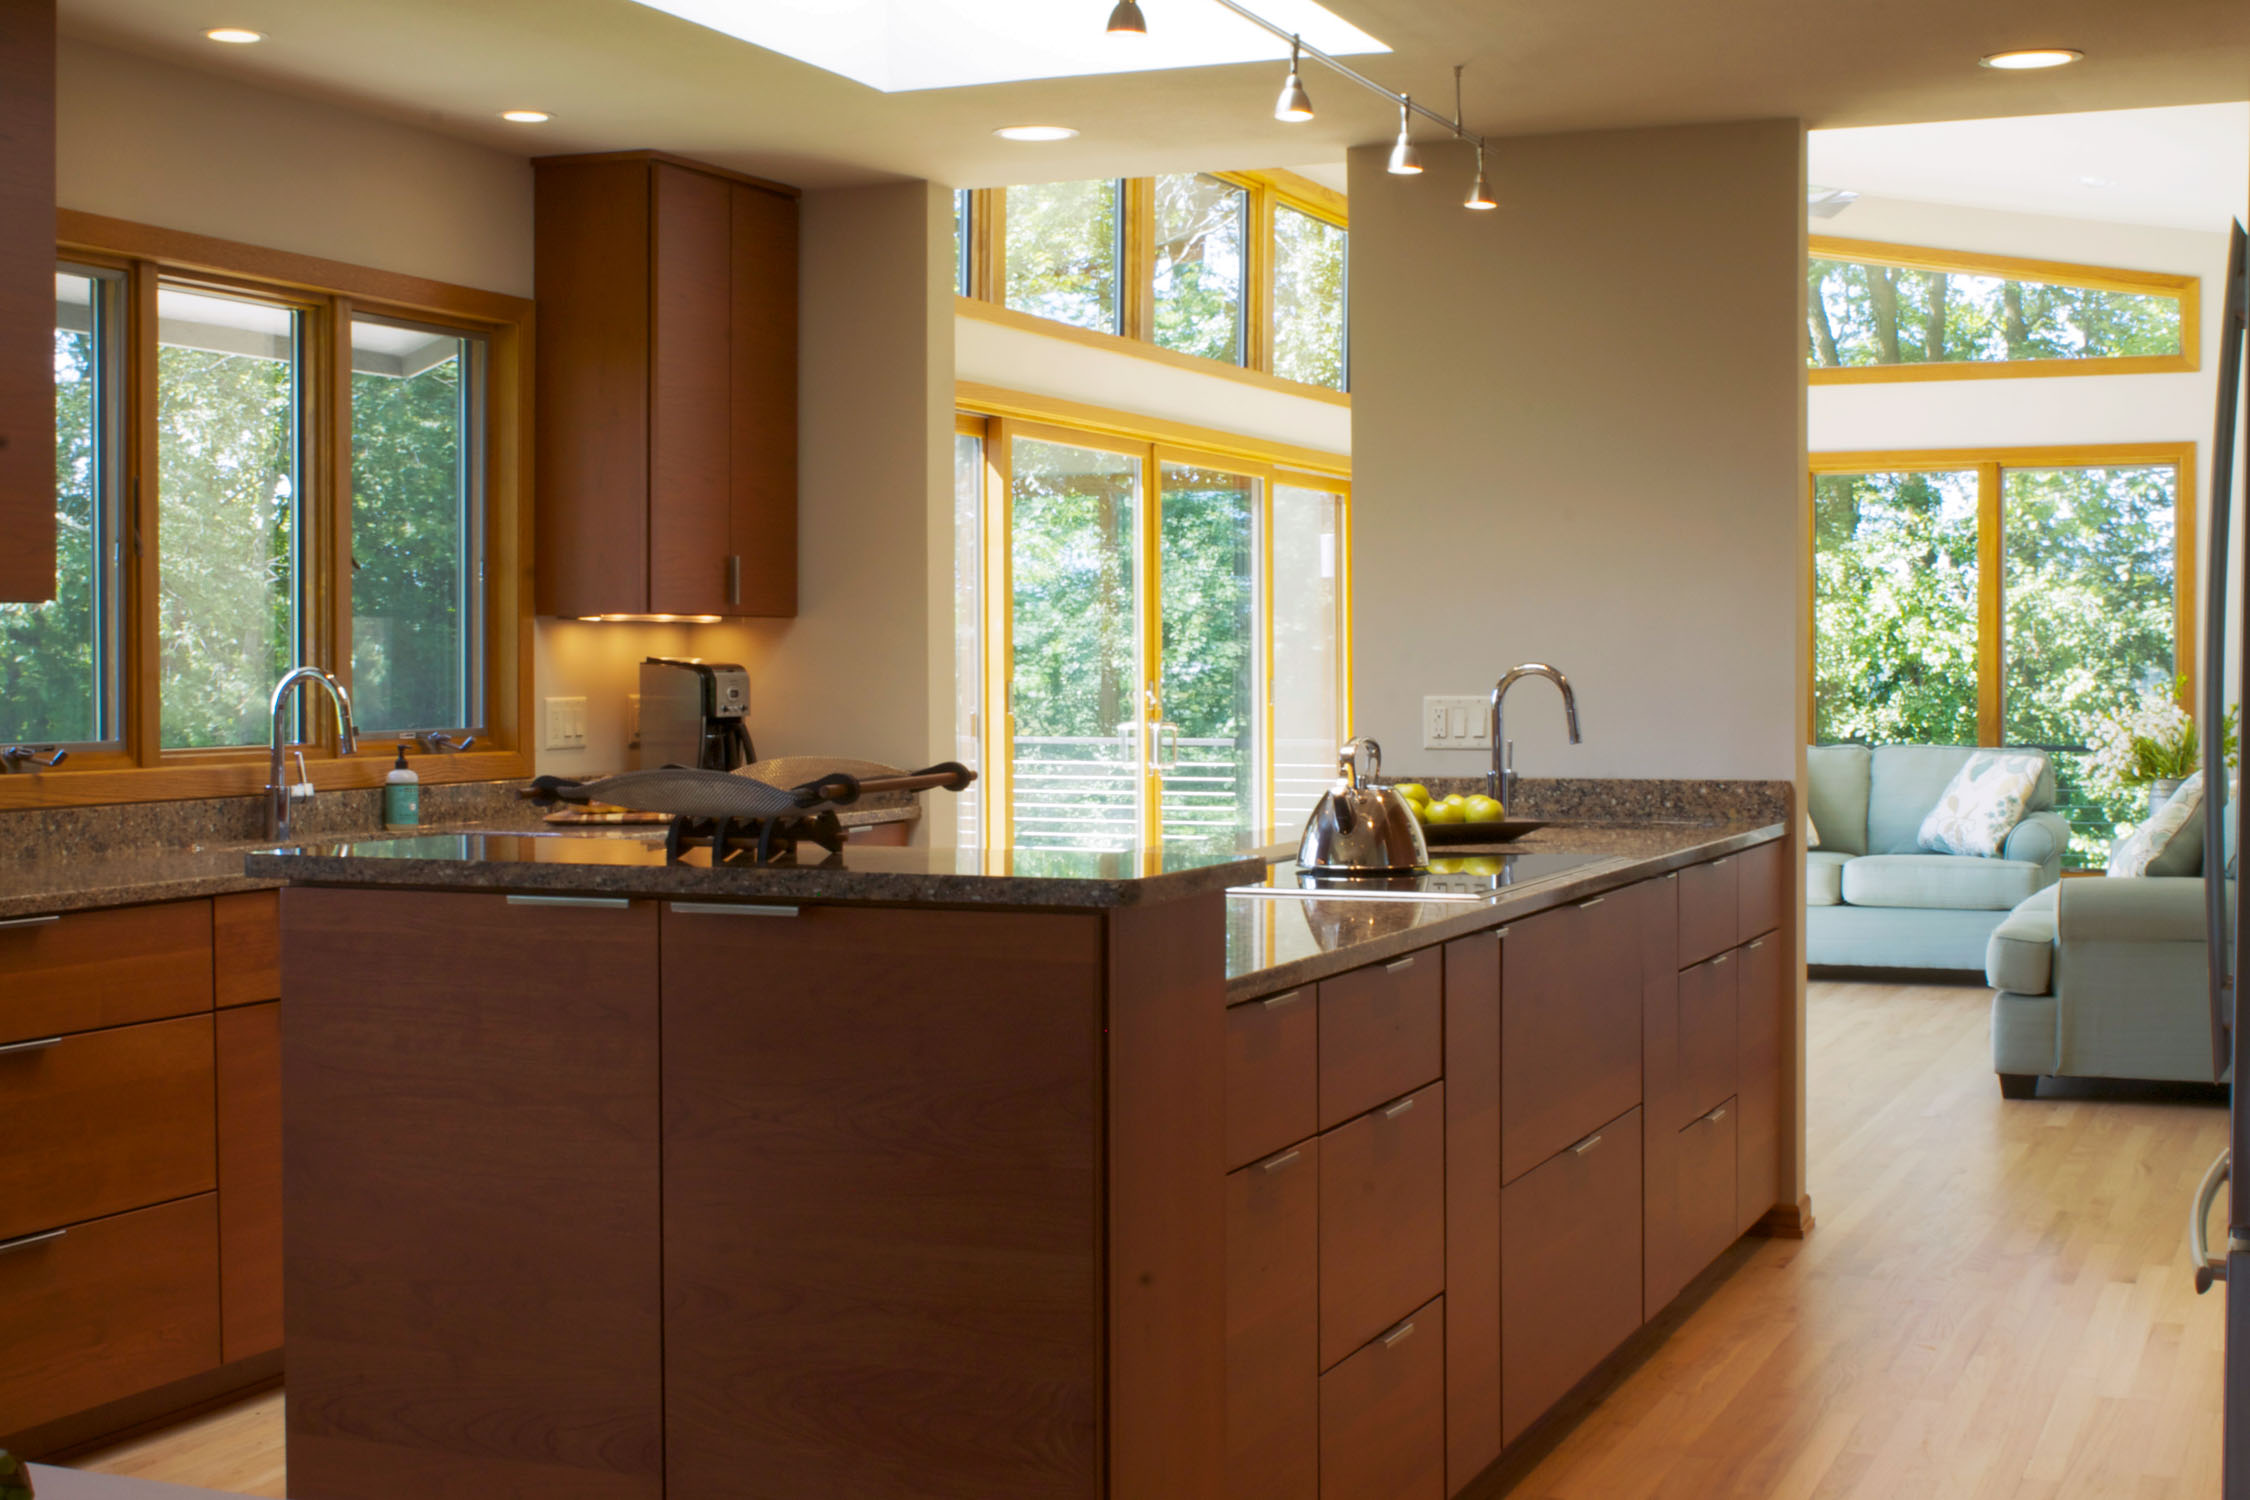 - This remodeled kitchen in Westport, WI features an oversized window at the kitchen sink, a skylight over the island, and a two connections to the adjacent sunroom.